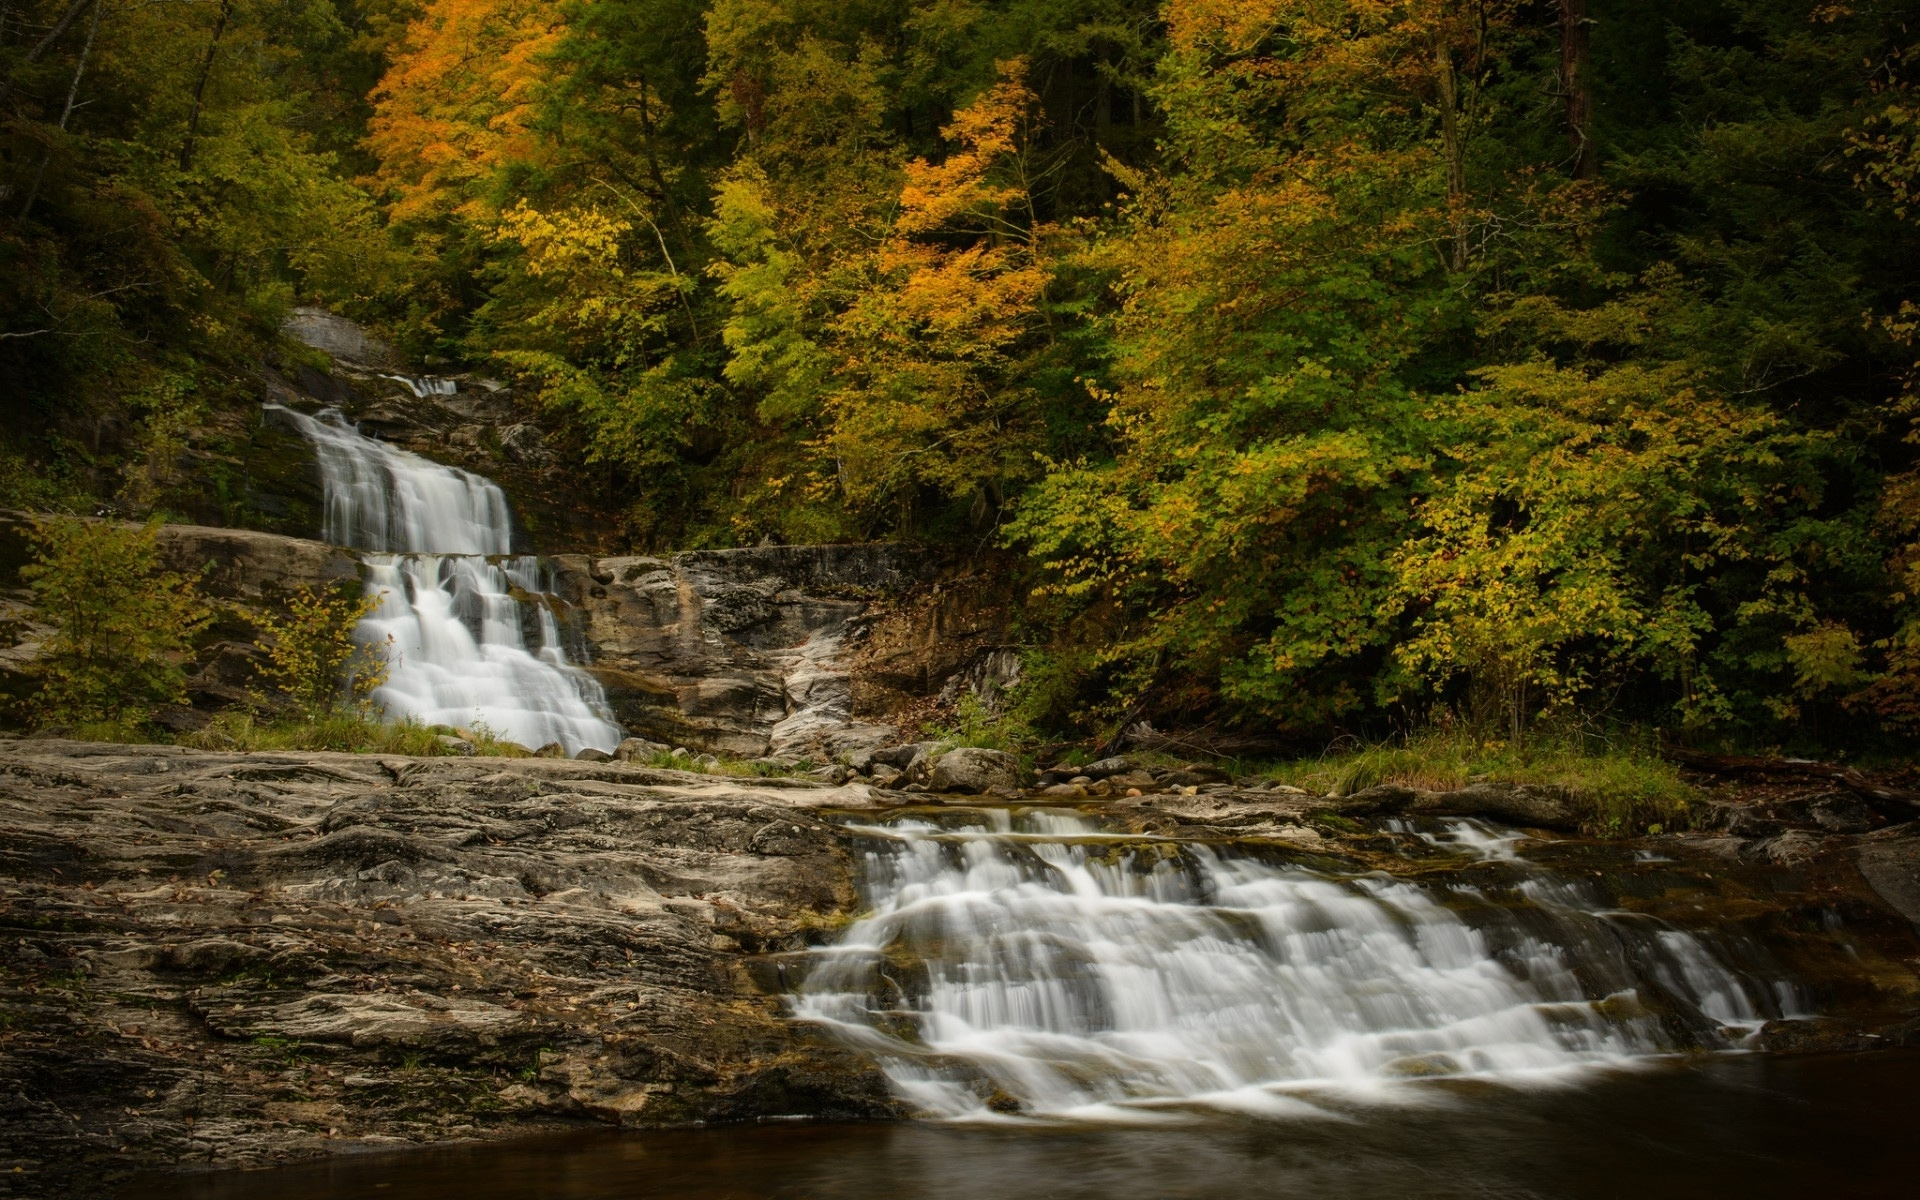 cascade wallpaper,waterfall,body of water,water resources,natural landscape,nature